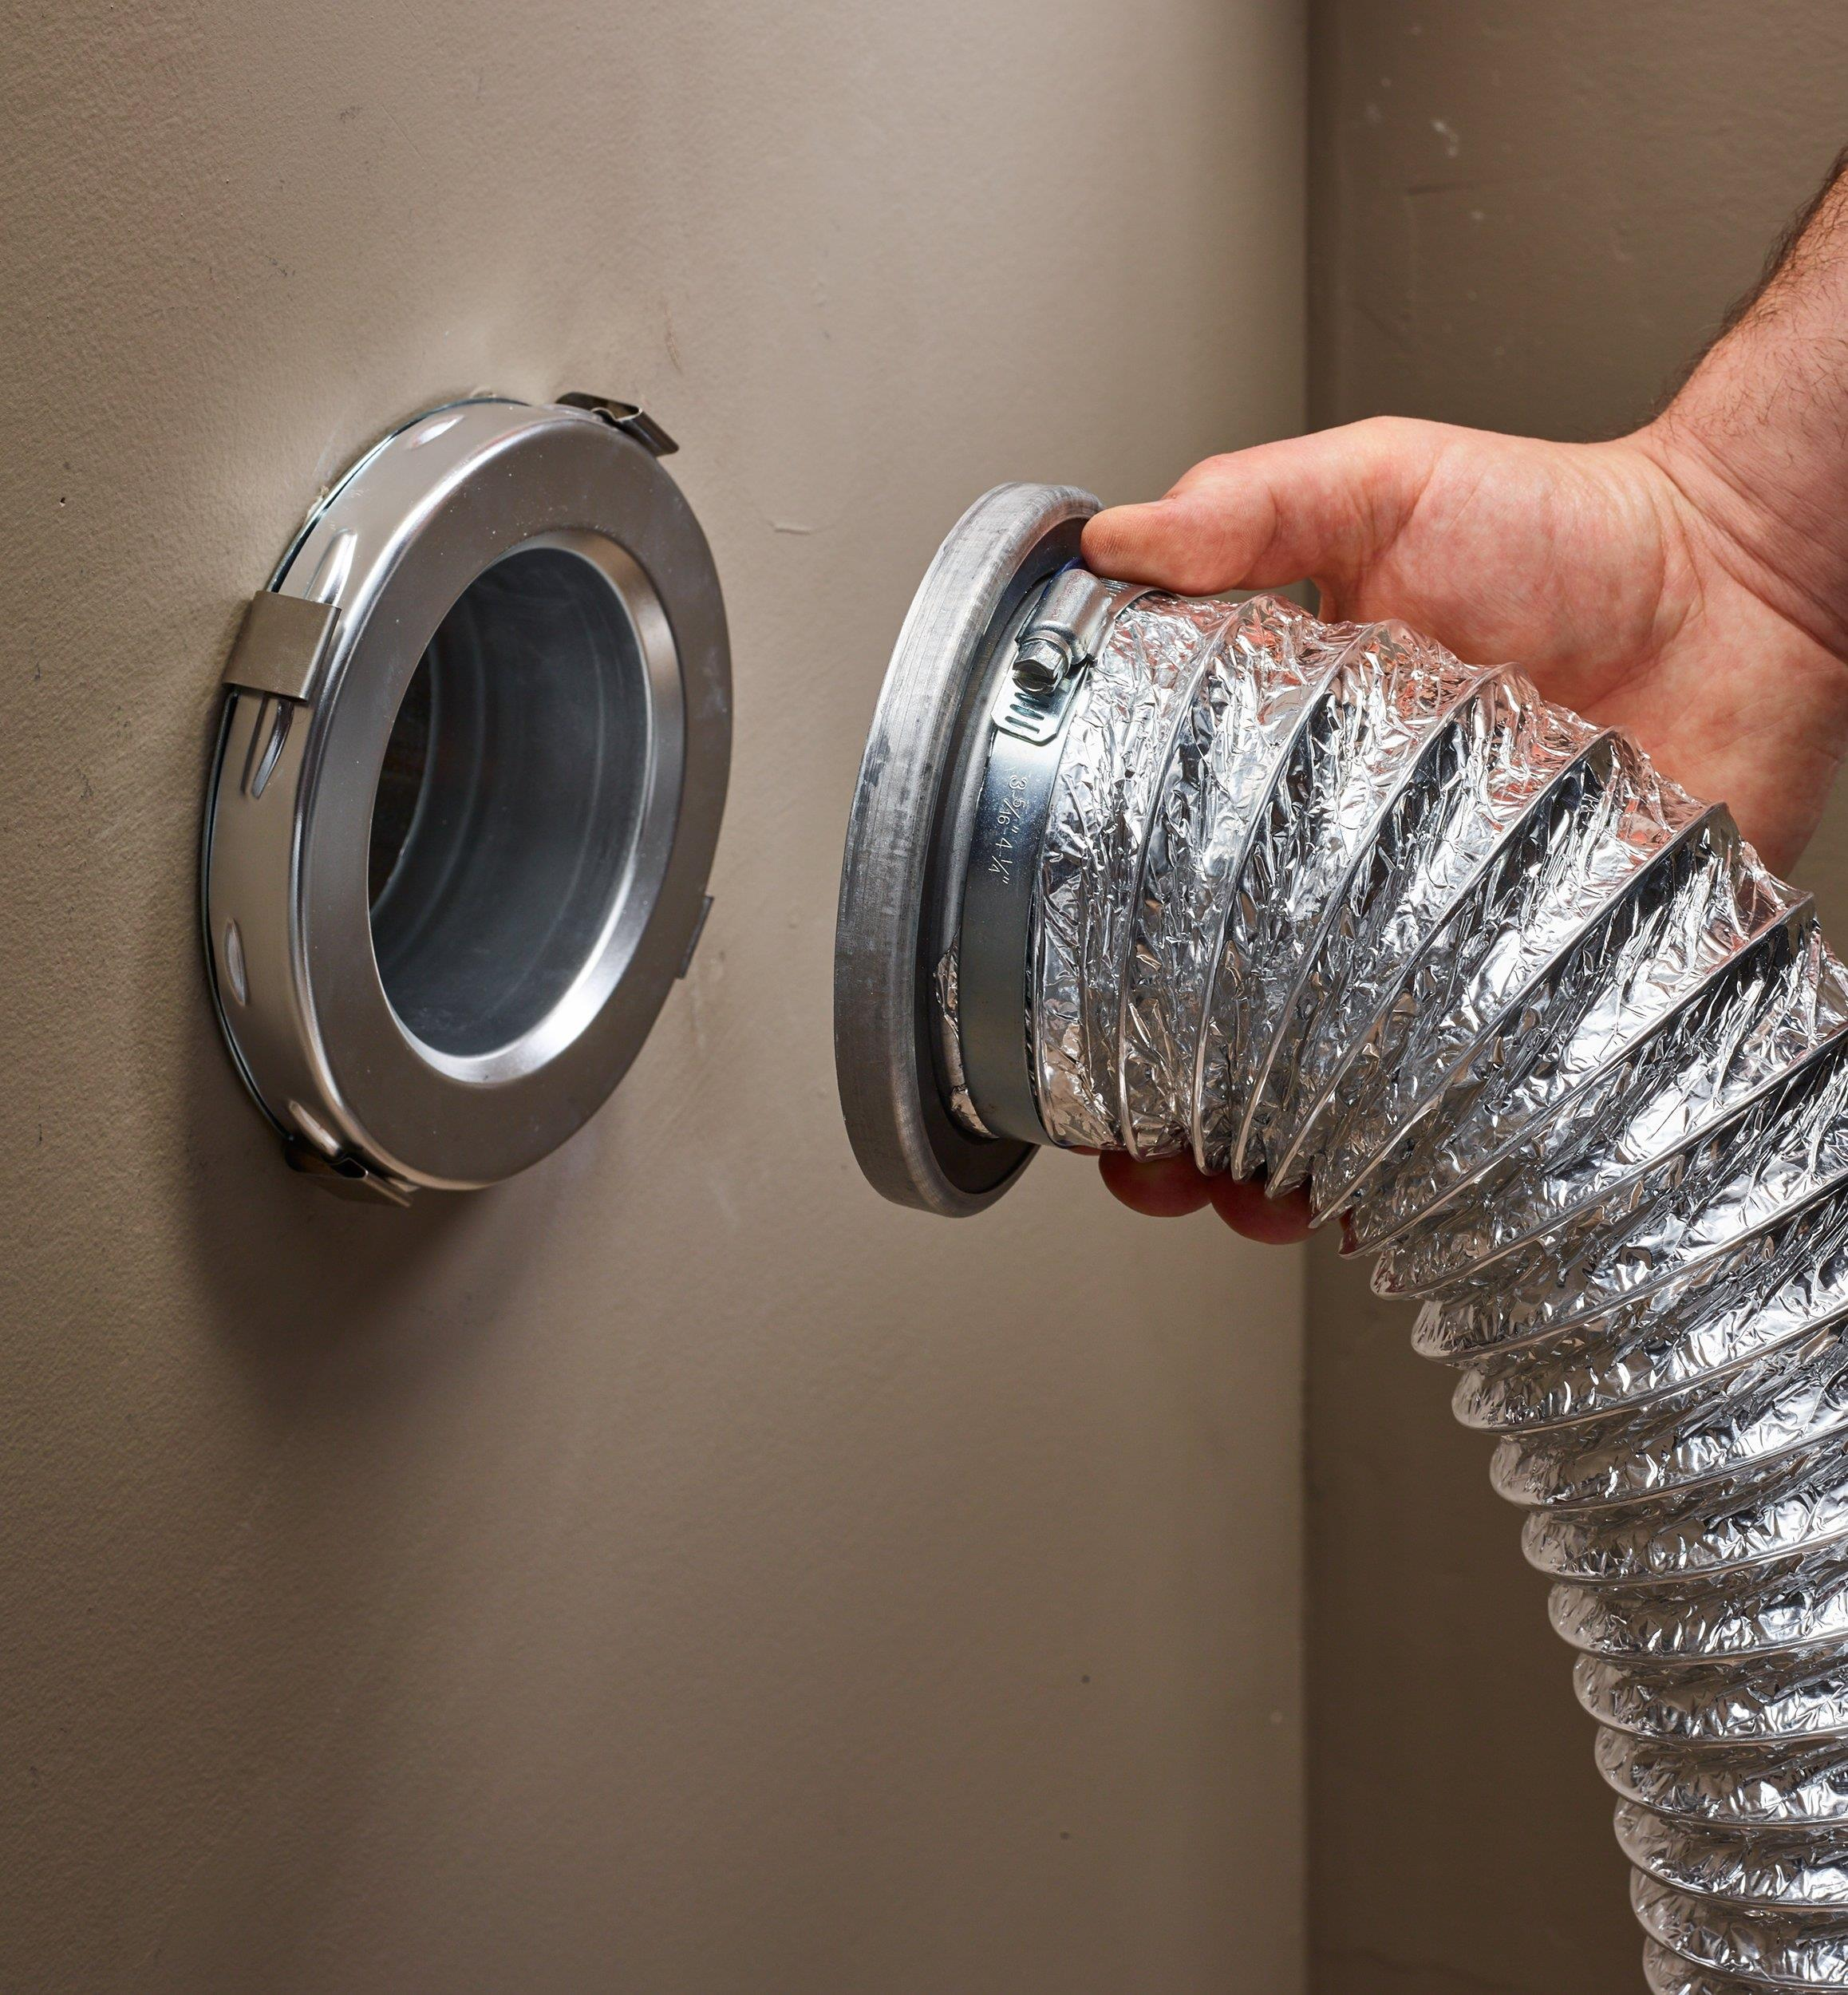 Dryer Vent Cleaning in Phoenix - Safe House Duct Cleaning ...